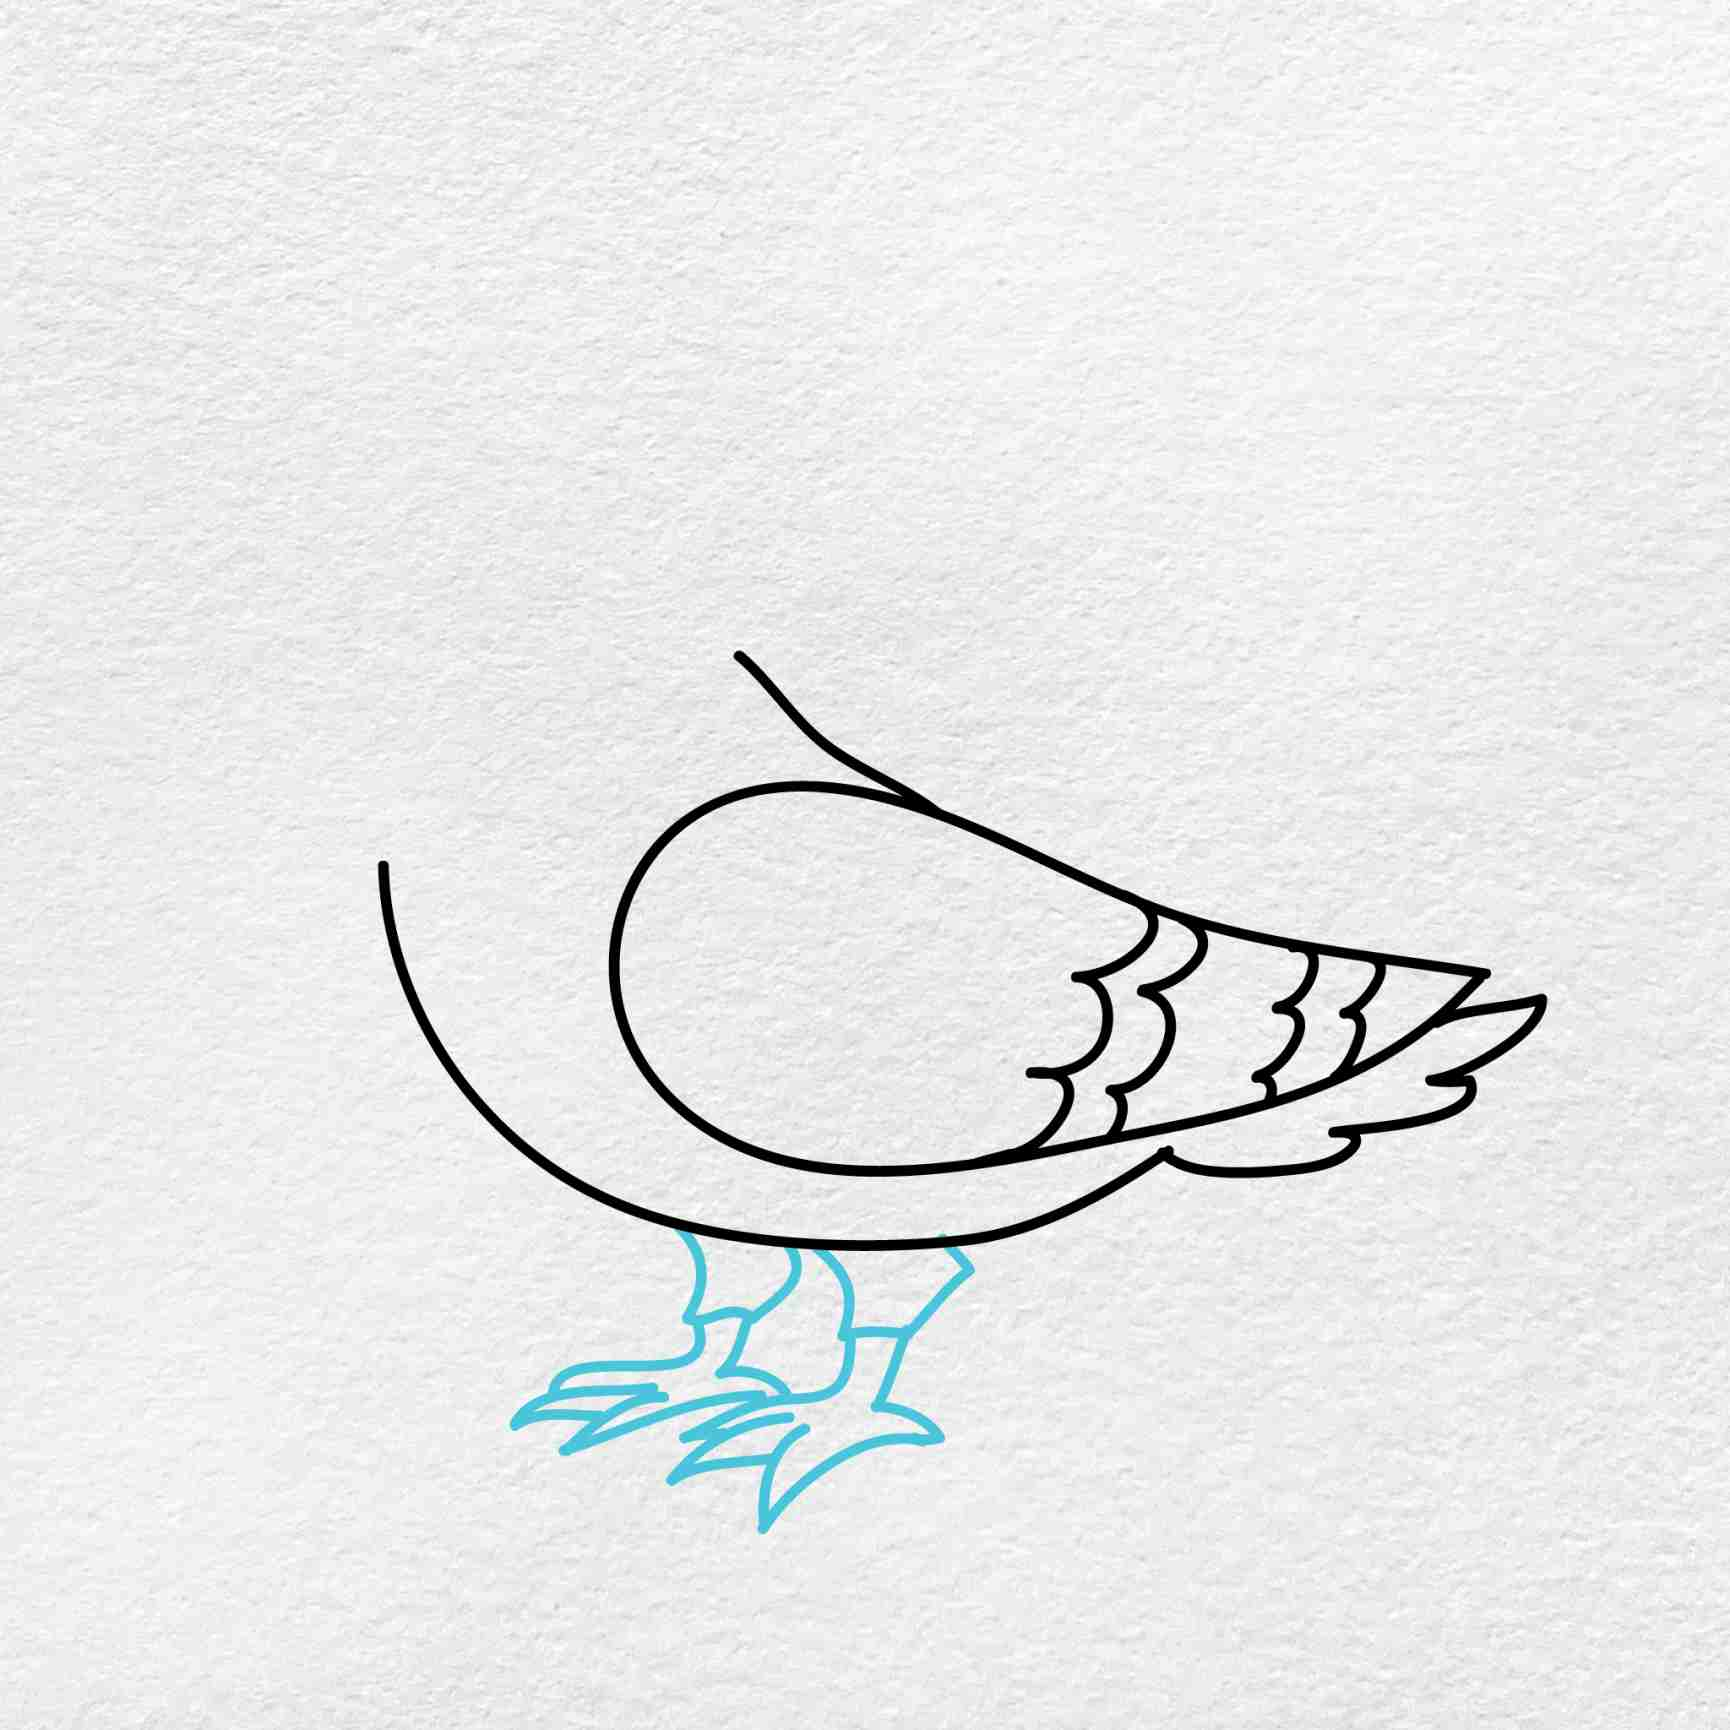 How To Draw A Pigeon: Step 4